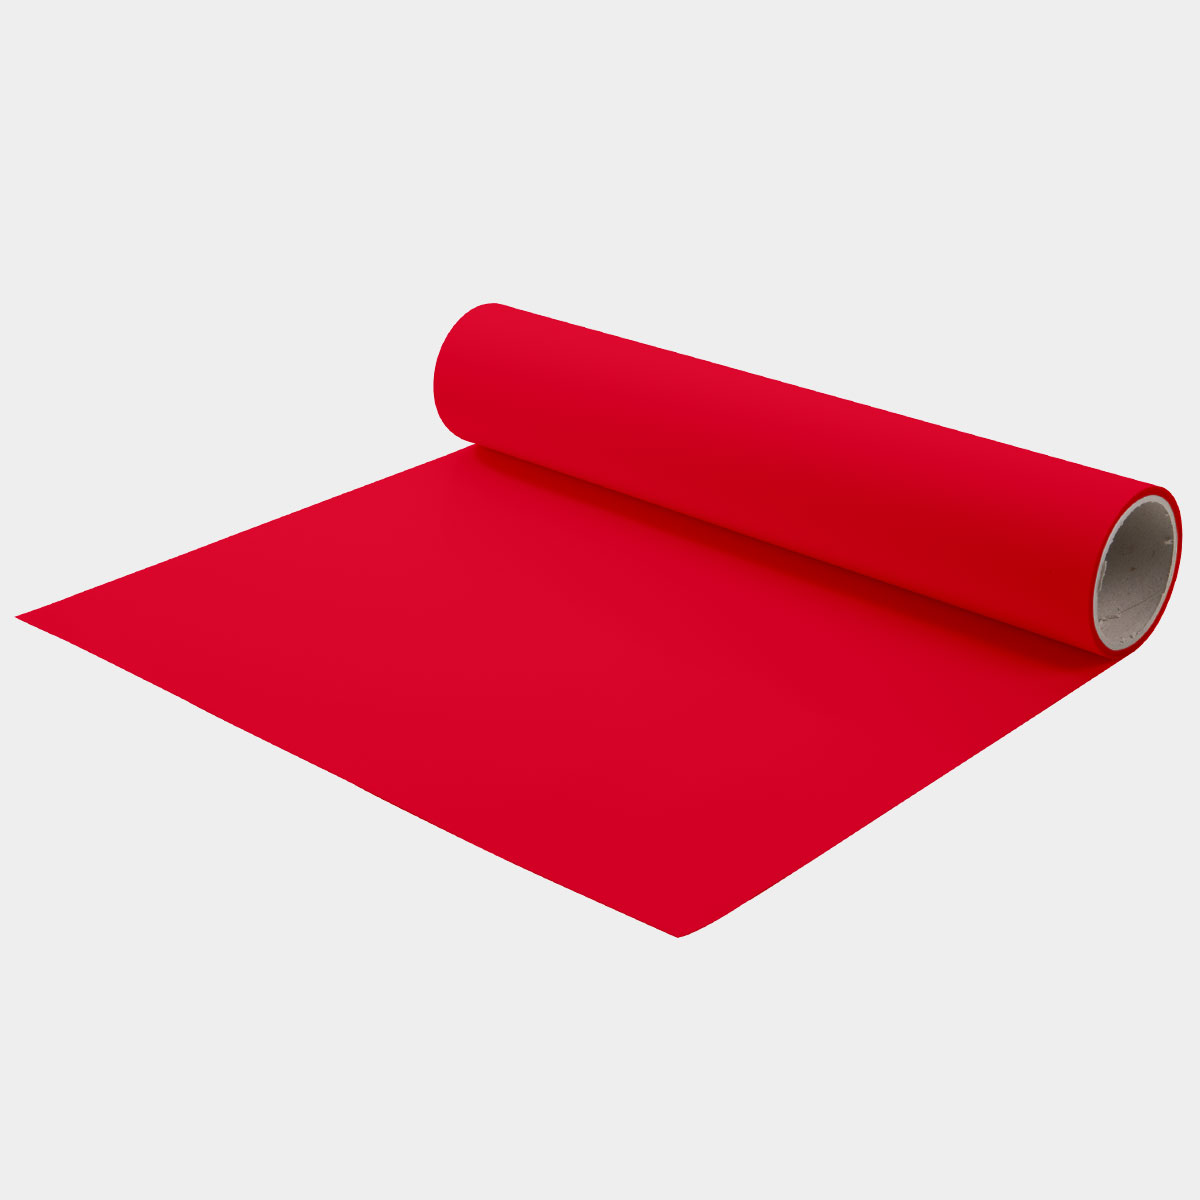 "HotMark Revolution Red Heat Transfer Vinyl 15""x5yd"